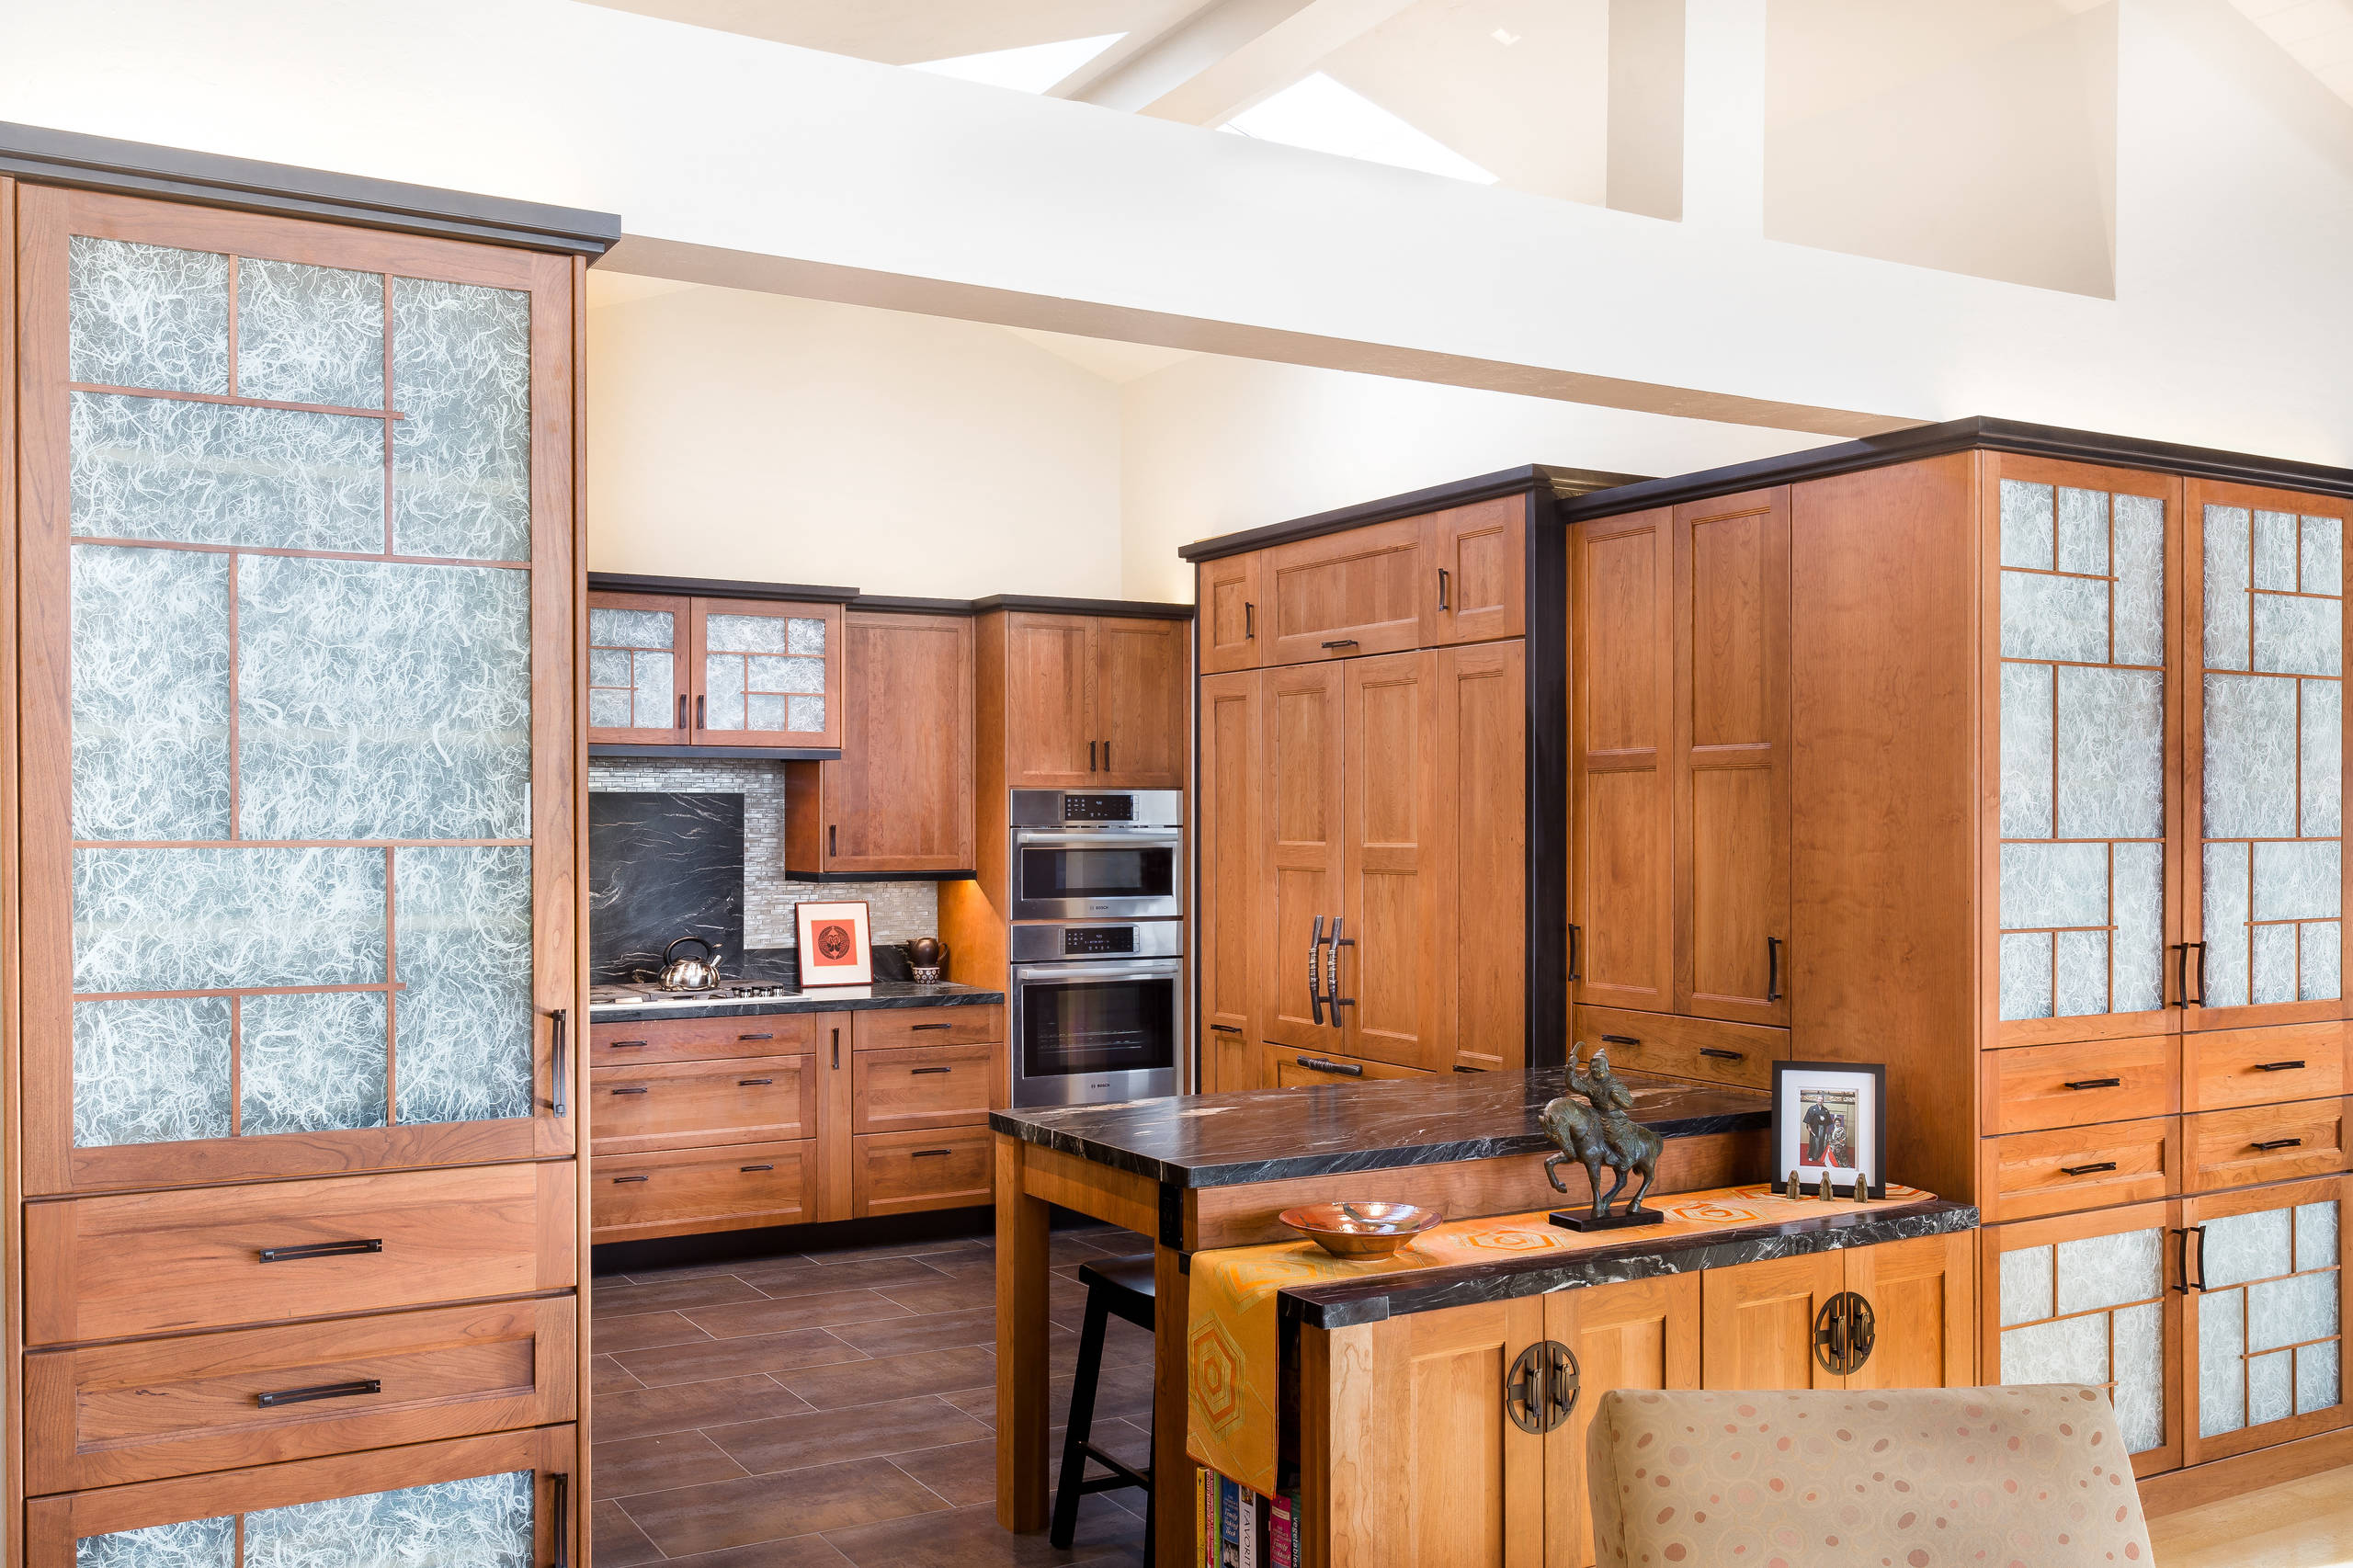 75 Beautiful Asian Kitchen With Glass Tile Backsplash Pictures Ideas November 2020 Houzz